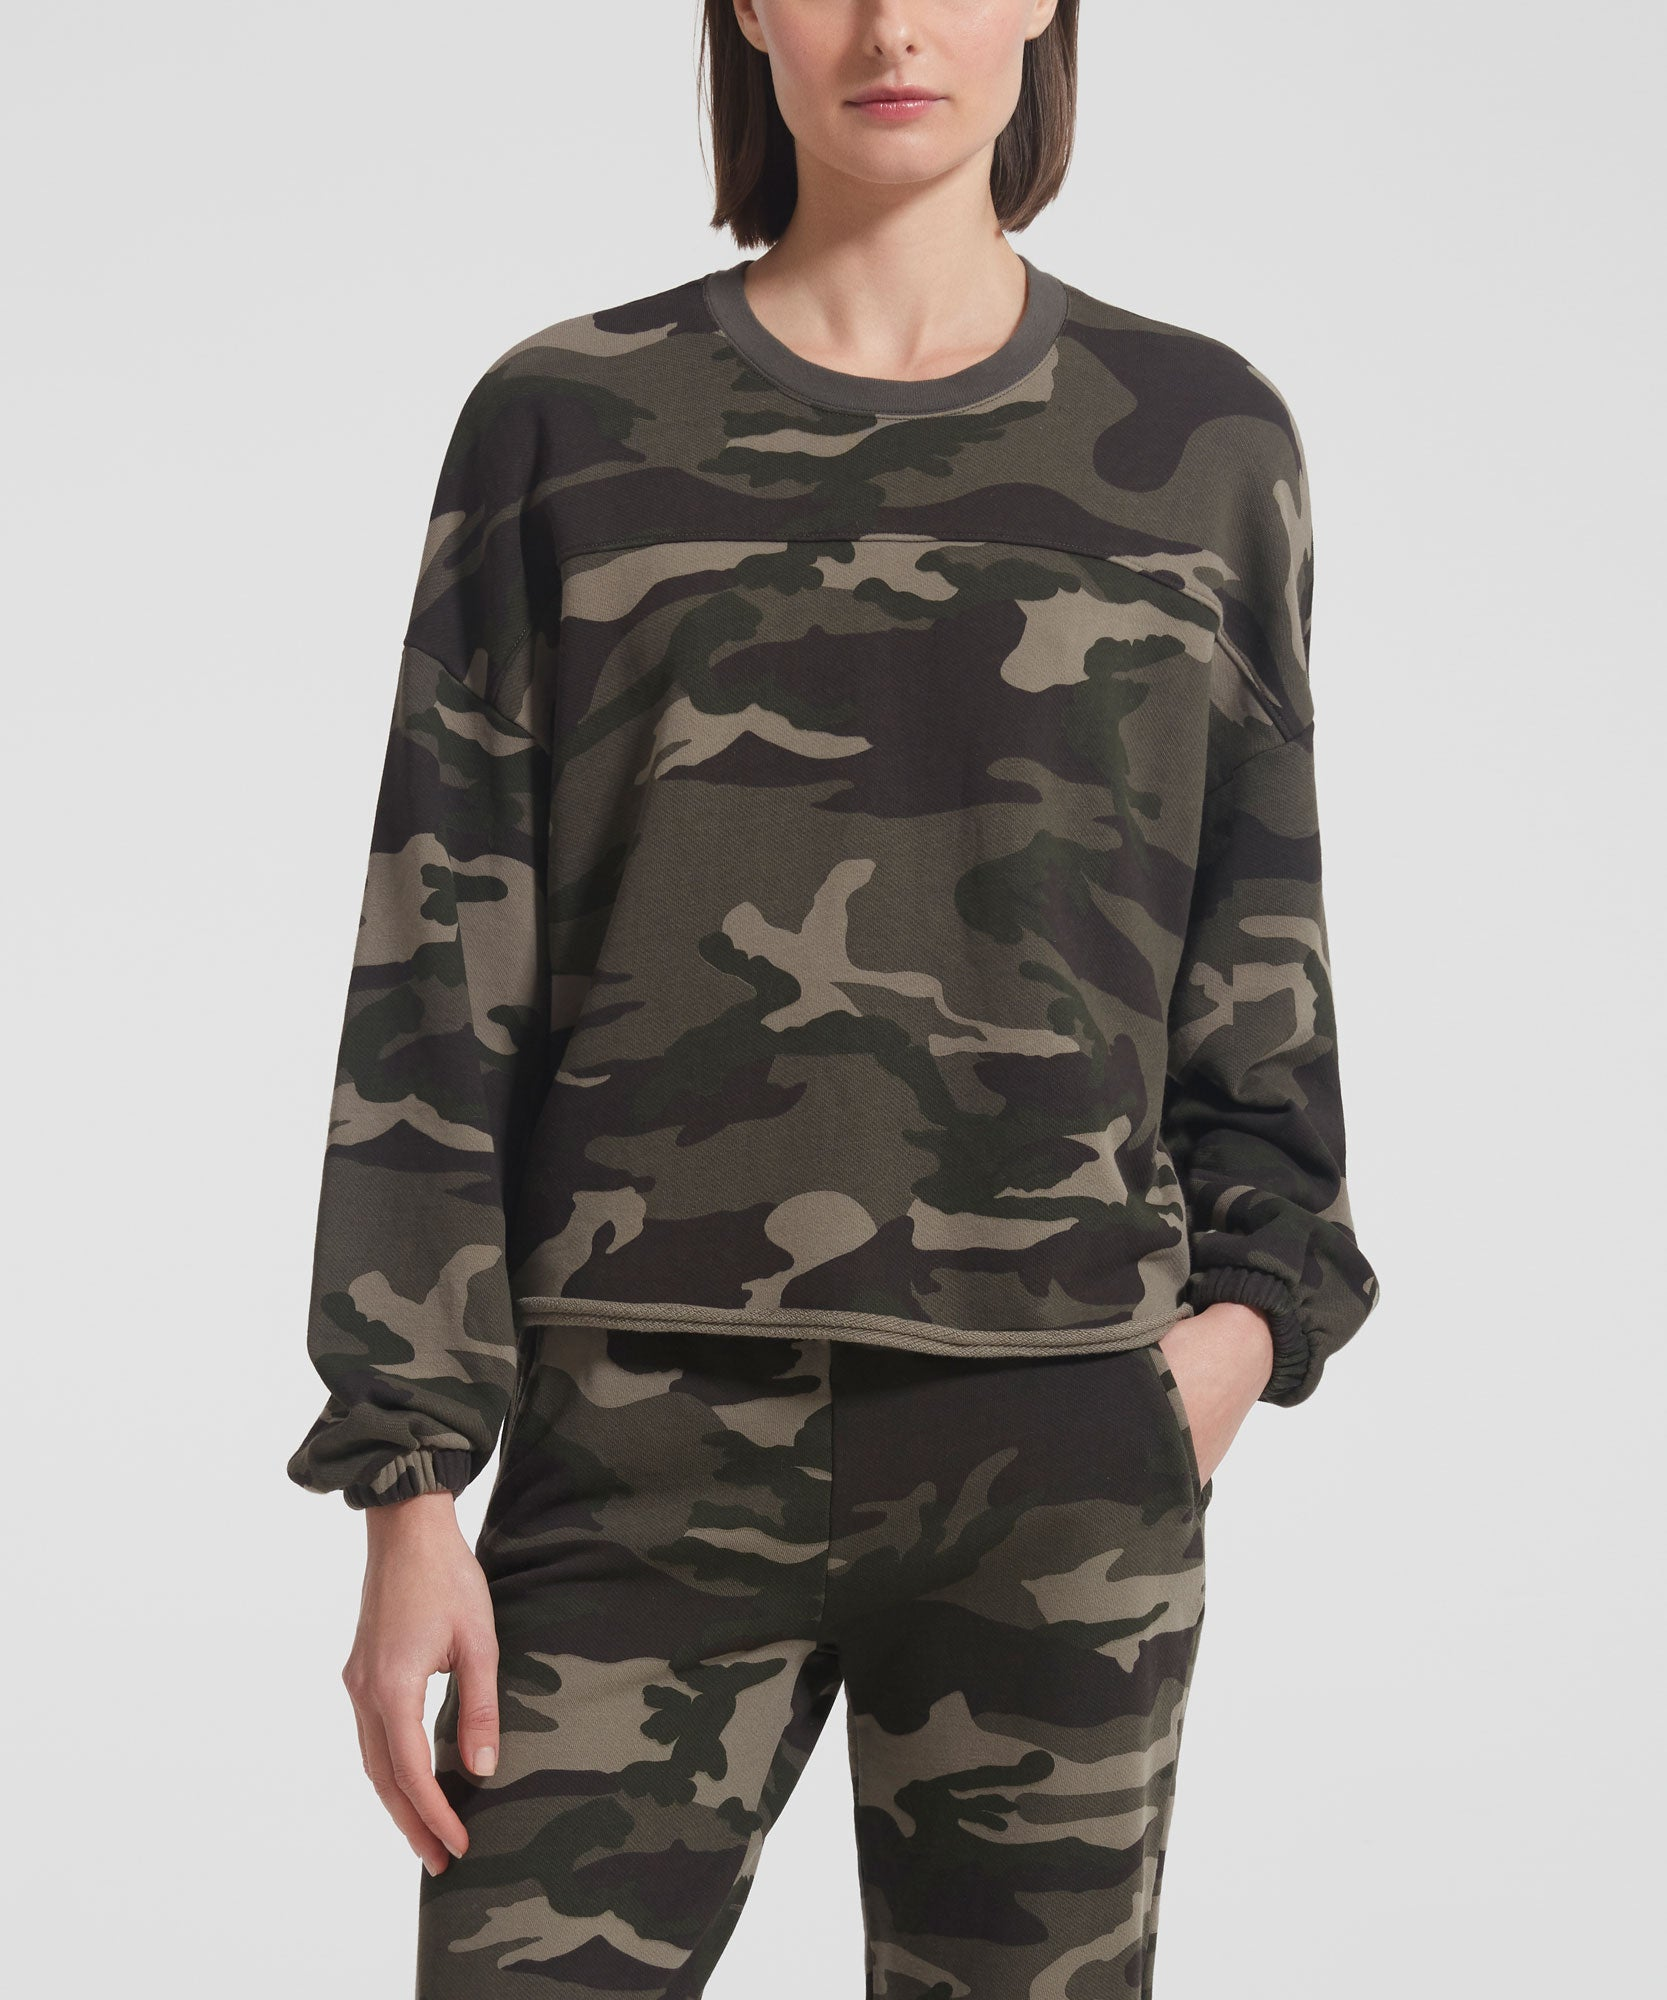 Jungle Camo French Terry Crew Neck Sweatshirt - Women's Luxe Cotton Loungewear by ATM Anthony Thomas Melillo